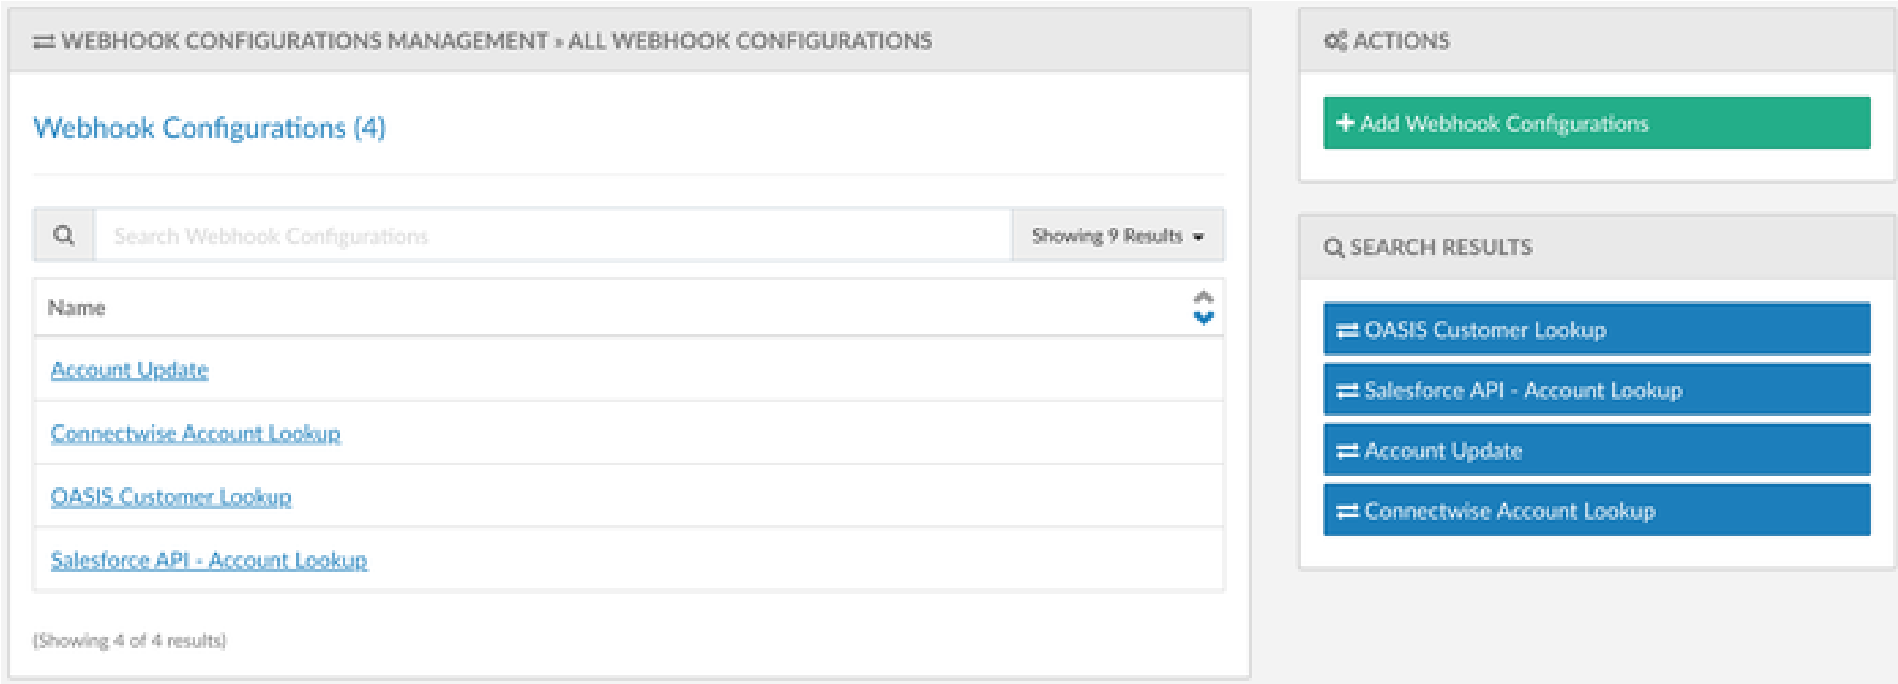 Figure 01 Webhook Configurations Management